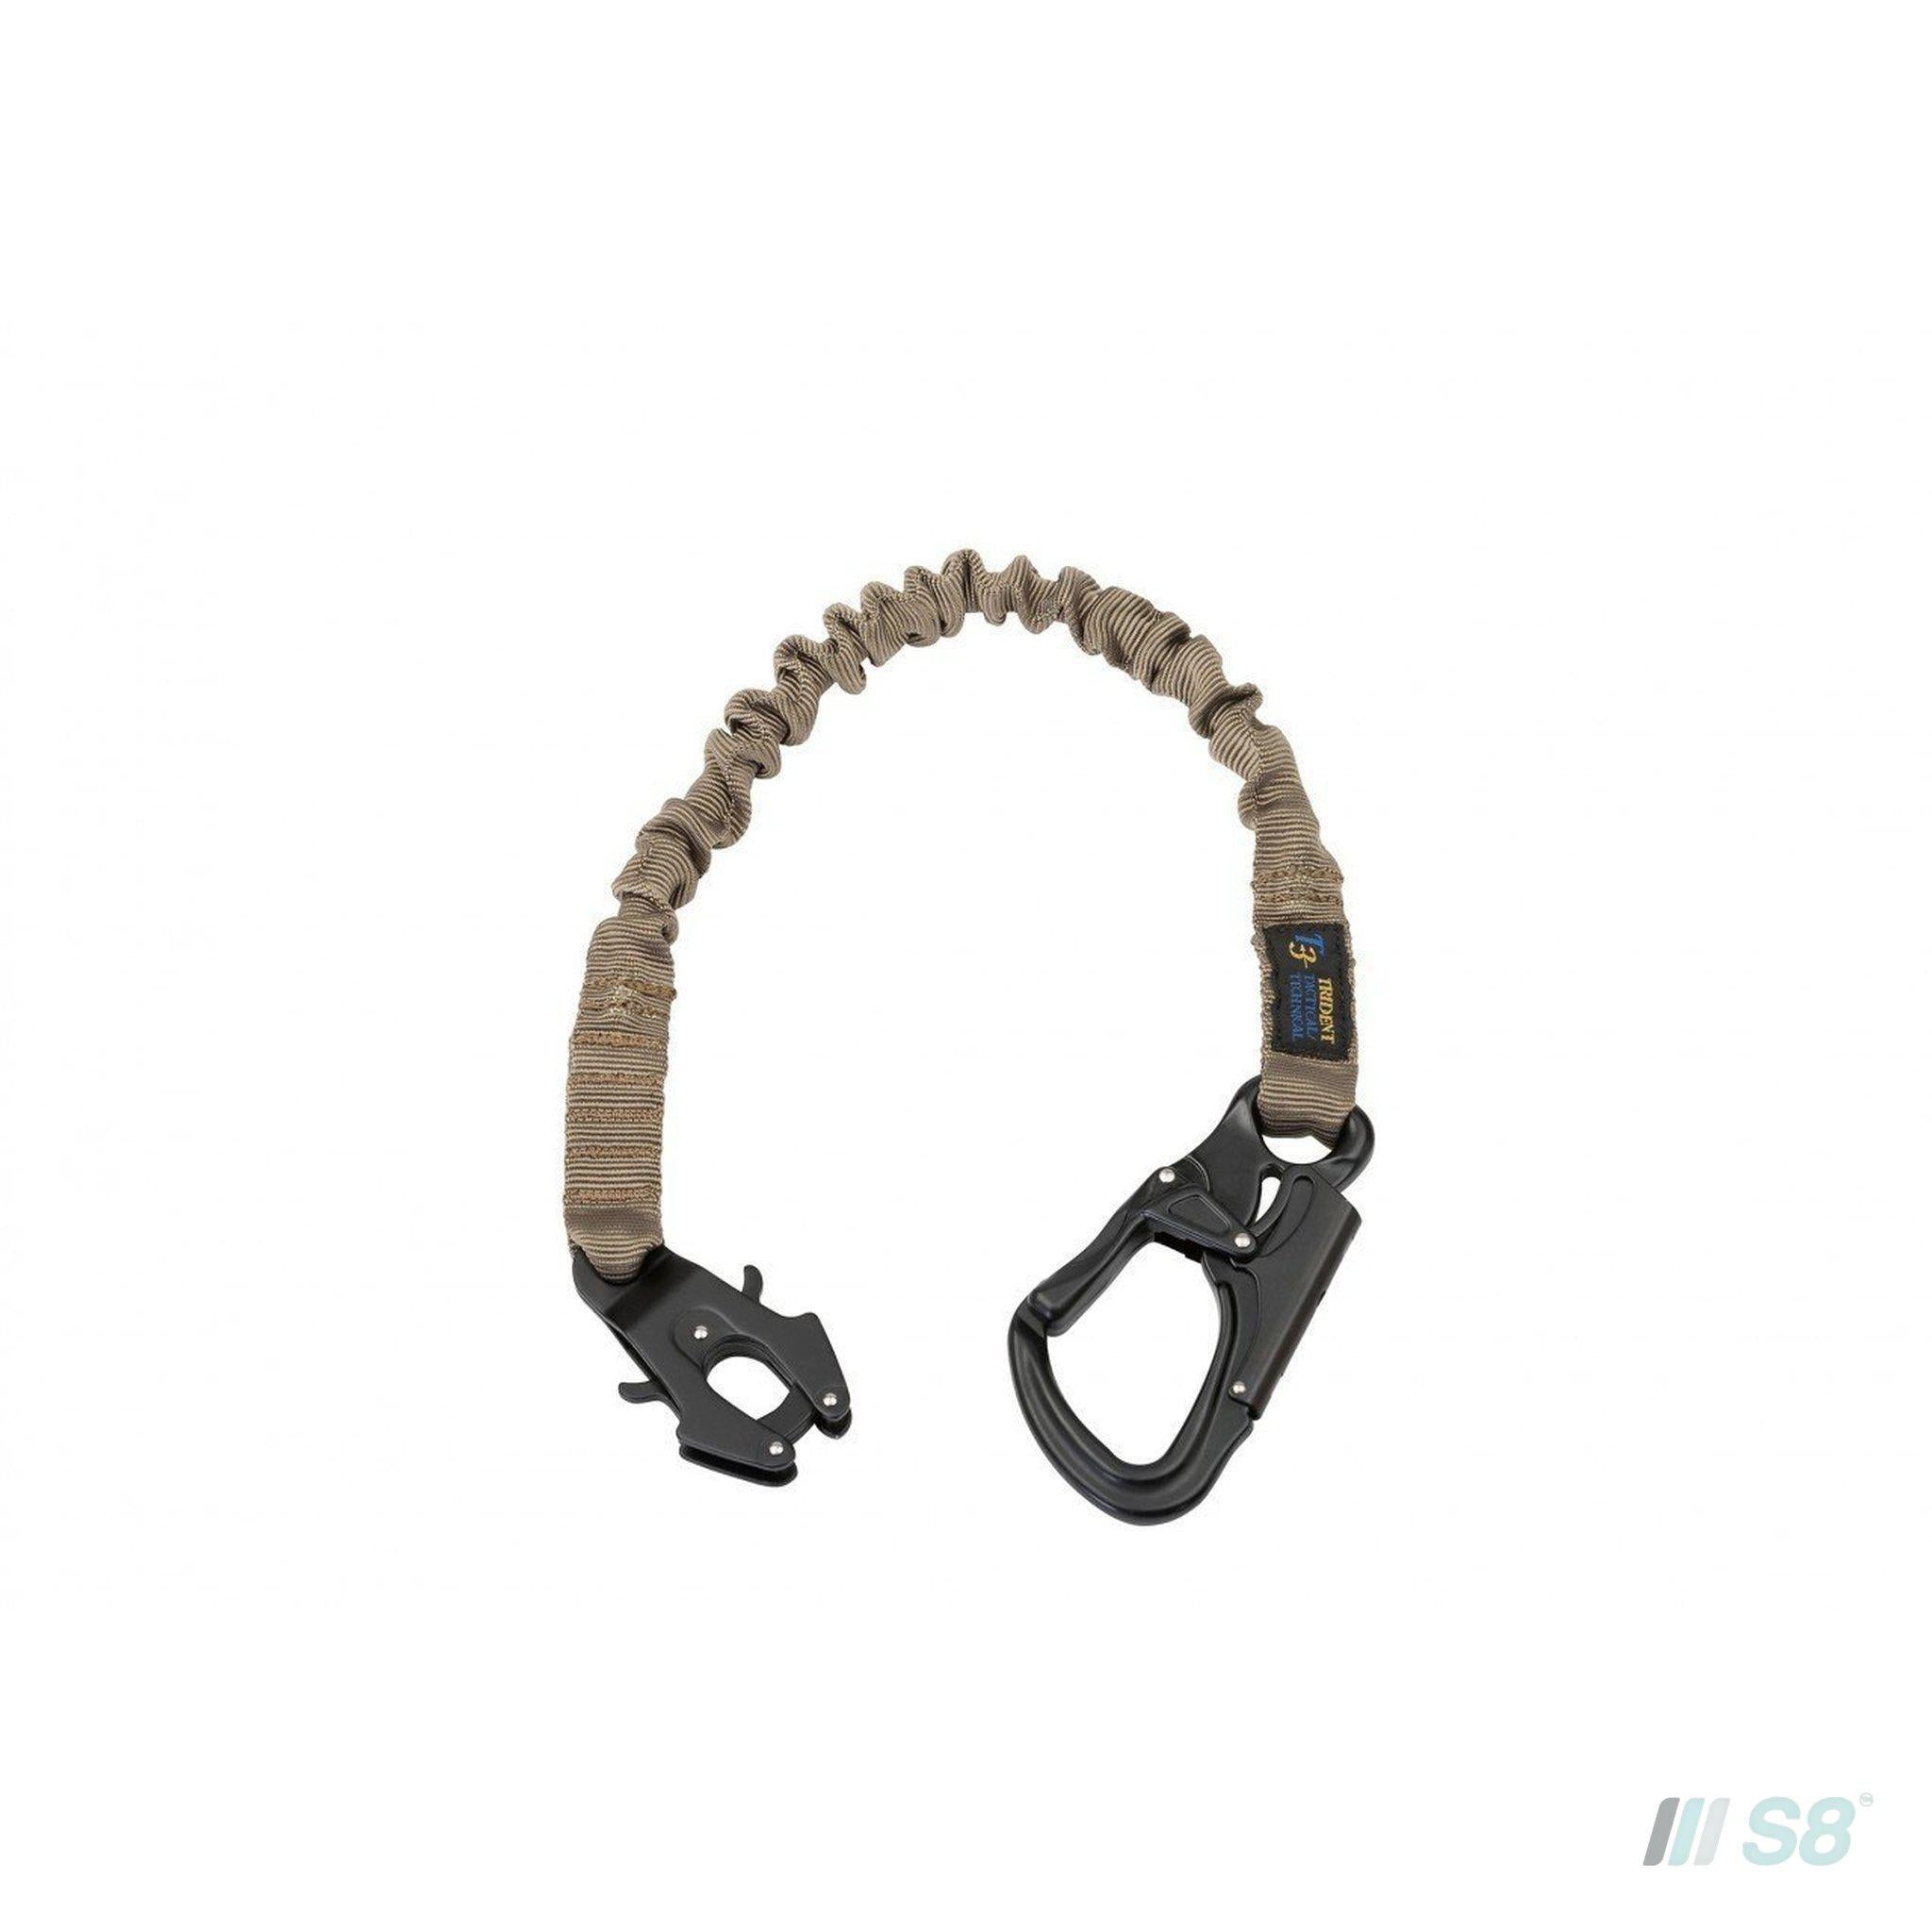 T3 Personal Retention Lanyard 1-T3-S8 Products Group